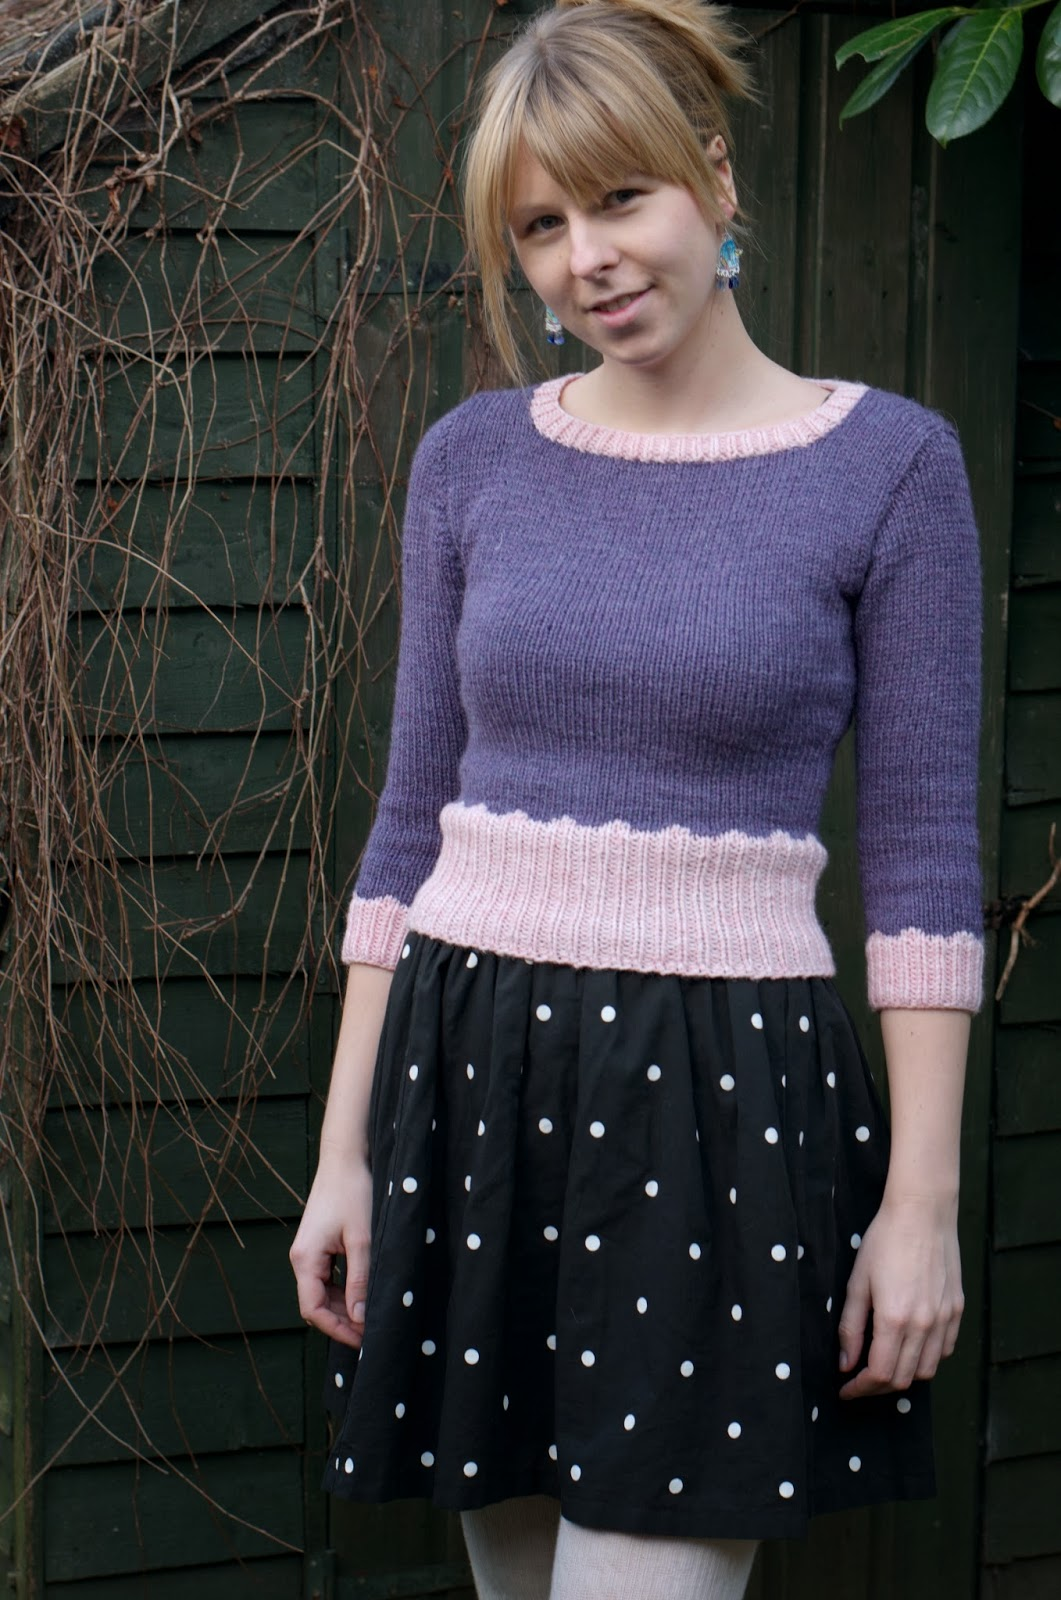 Ela Sews And Doesn\'t Sleep: Knitting: A Cropped Sweater for Winter